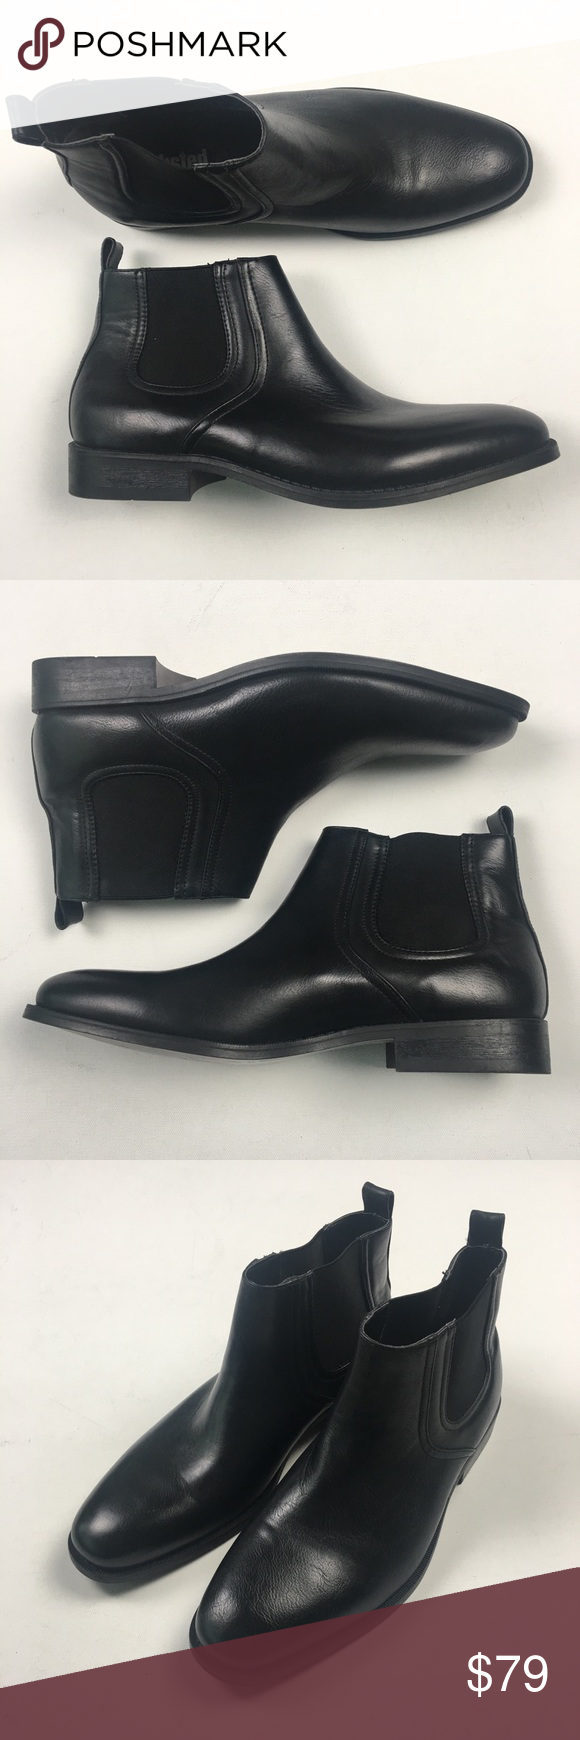 f81d312438e5 Kenneth Cole Chelsea Boot Sz 8M A65 Brand new. Kenneth Cole Shoes Boots